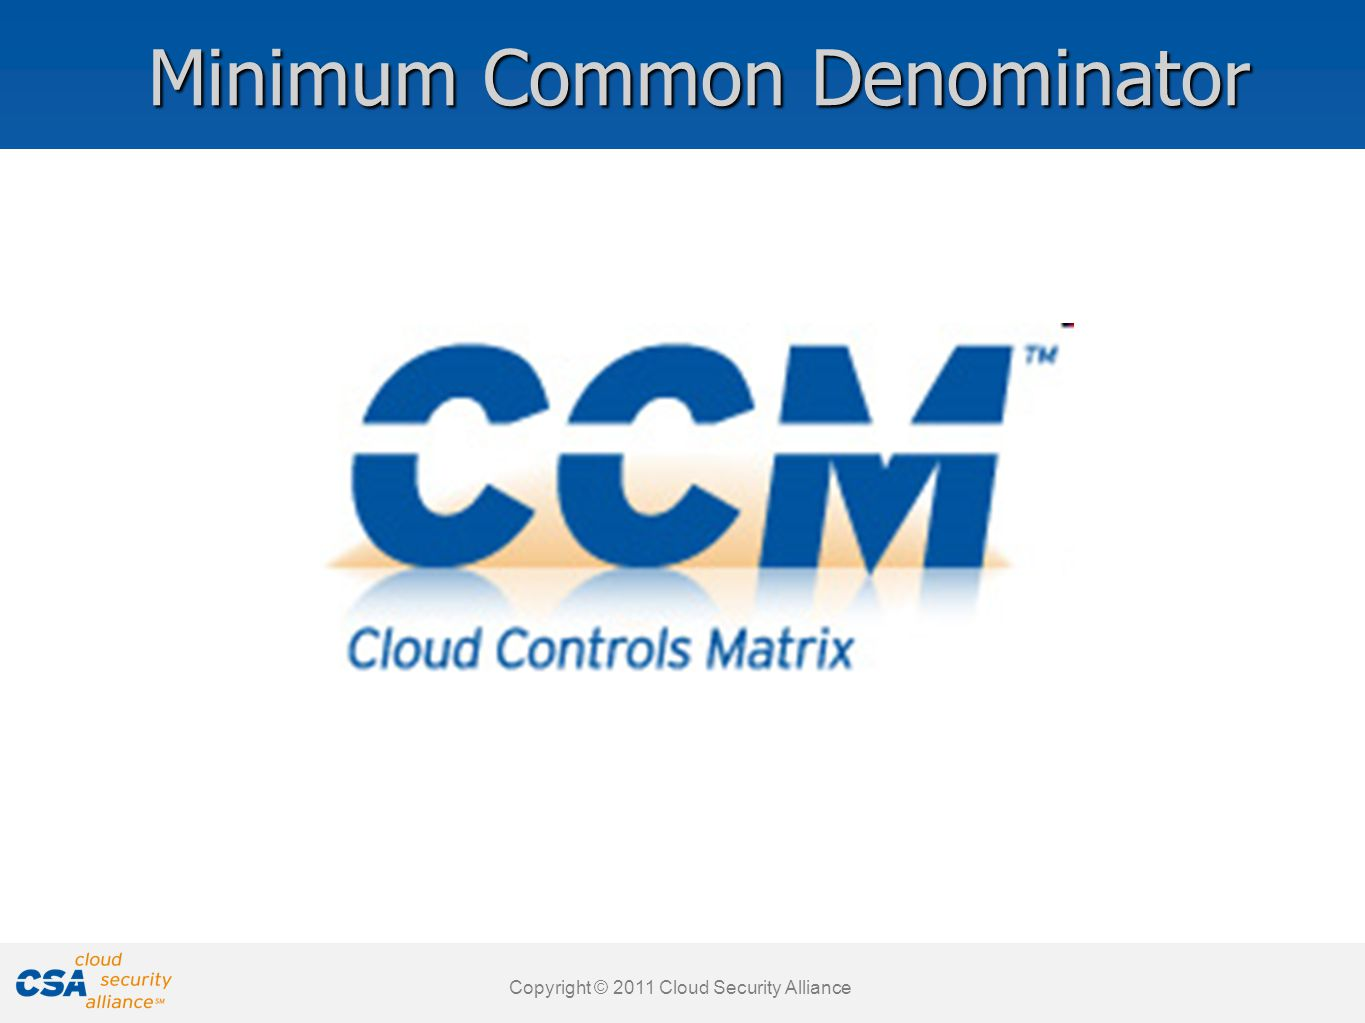 www.cloudsecurityalliance.org Copyright © 2011 Cloud Security Alliance www.cloudsecurityalliance.org Cloud Control Matrix Cloud specific: Security Control Framework designed with Cloud in mind Global effort: developed with the contribution of more than 500 subject matter experts Widely adopted by thousands of companies and Government Structured in 16 domains and 136 controls Ensure due care is taken in the cloud provider supply chain It is mapped against all the other relevant standards: ISO 27001, COBIT, HIPAA, NIST SP800-53, FedRamp, PCI, BITS, GAPP, Jericho Forum, NERC CIP, ENISA IAF, etc Flexible: It will be updated to keep pace with changes.